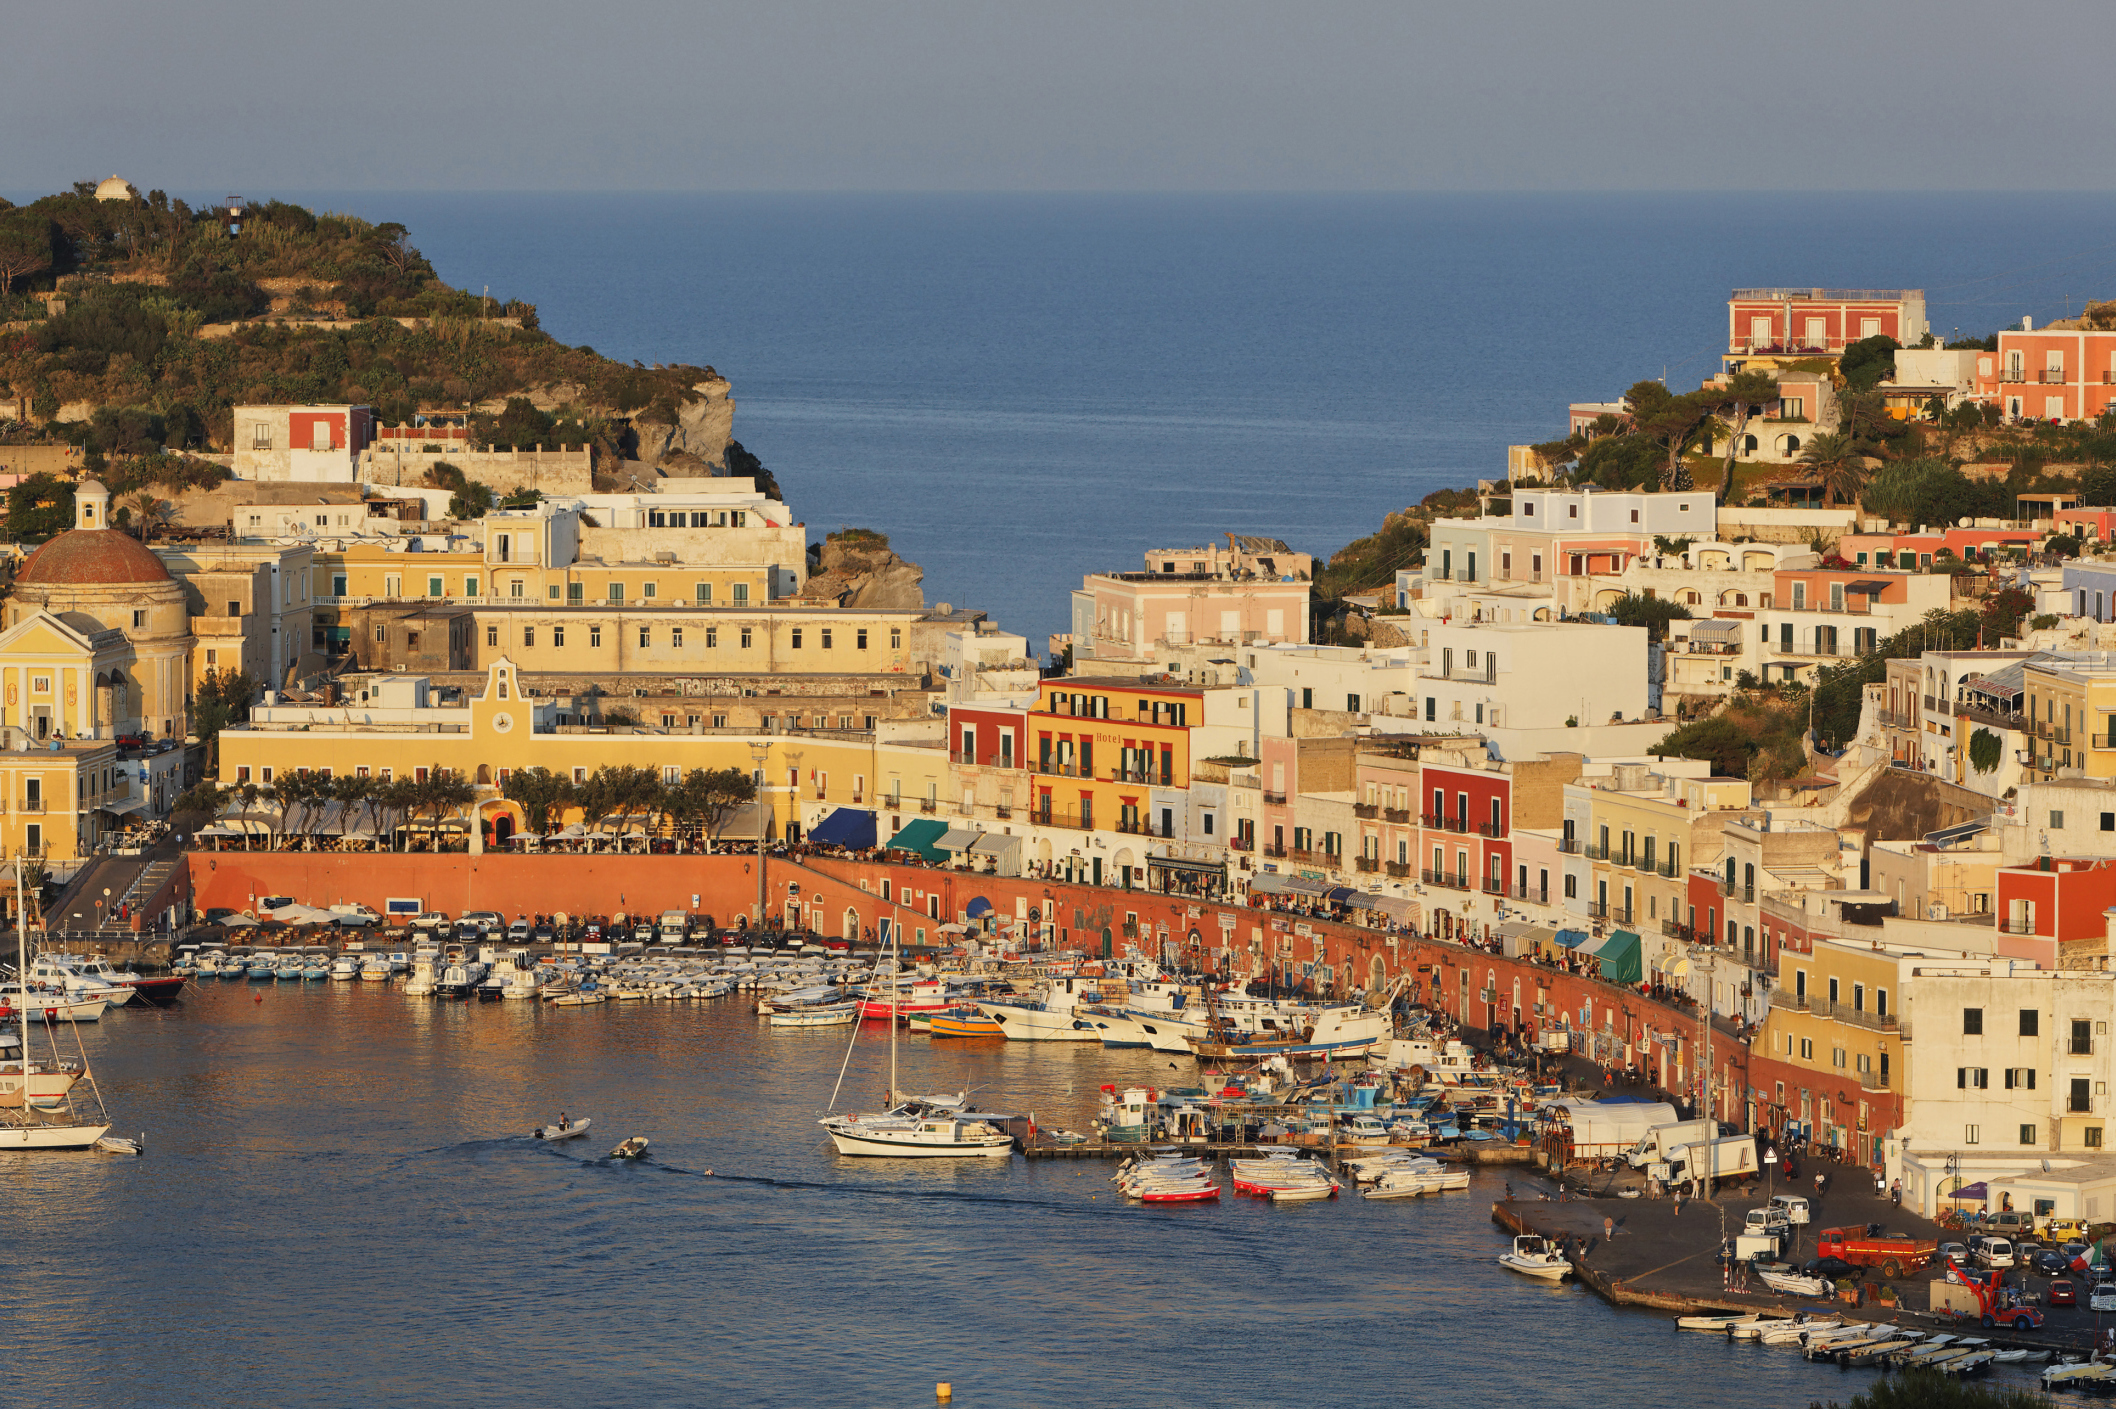 View of port and the town of Ponza, Island of Ponza, Pontine Islands, Lazio, Italy, Europe